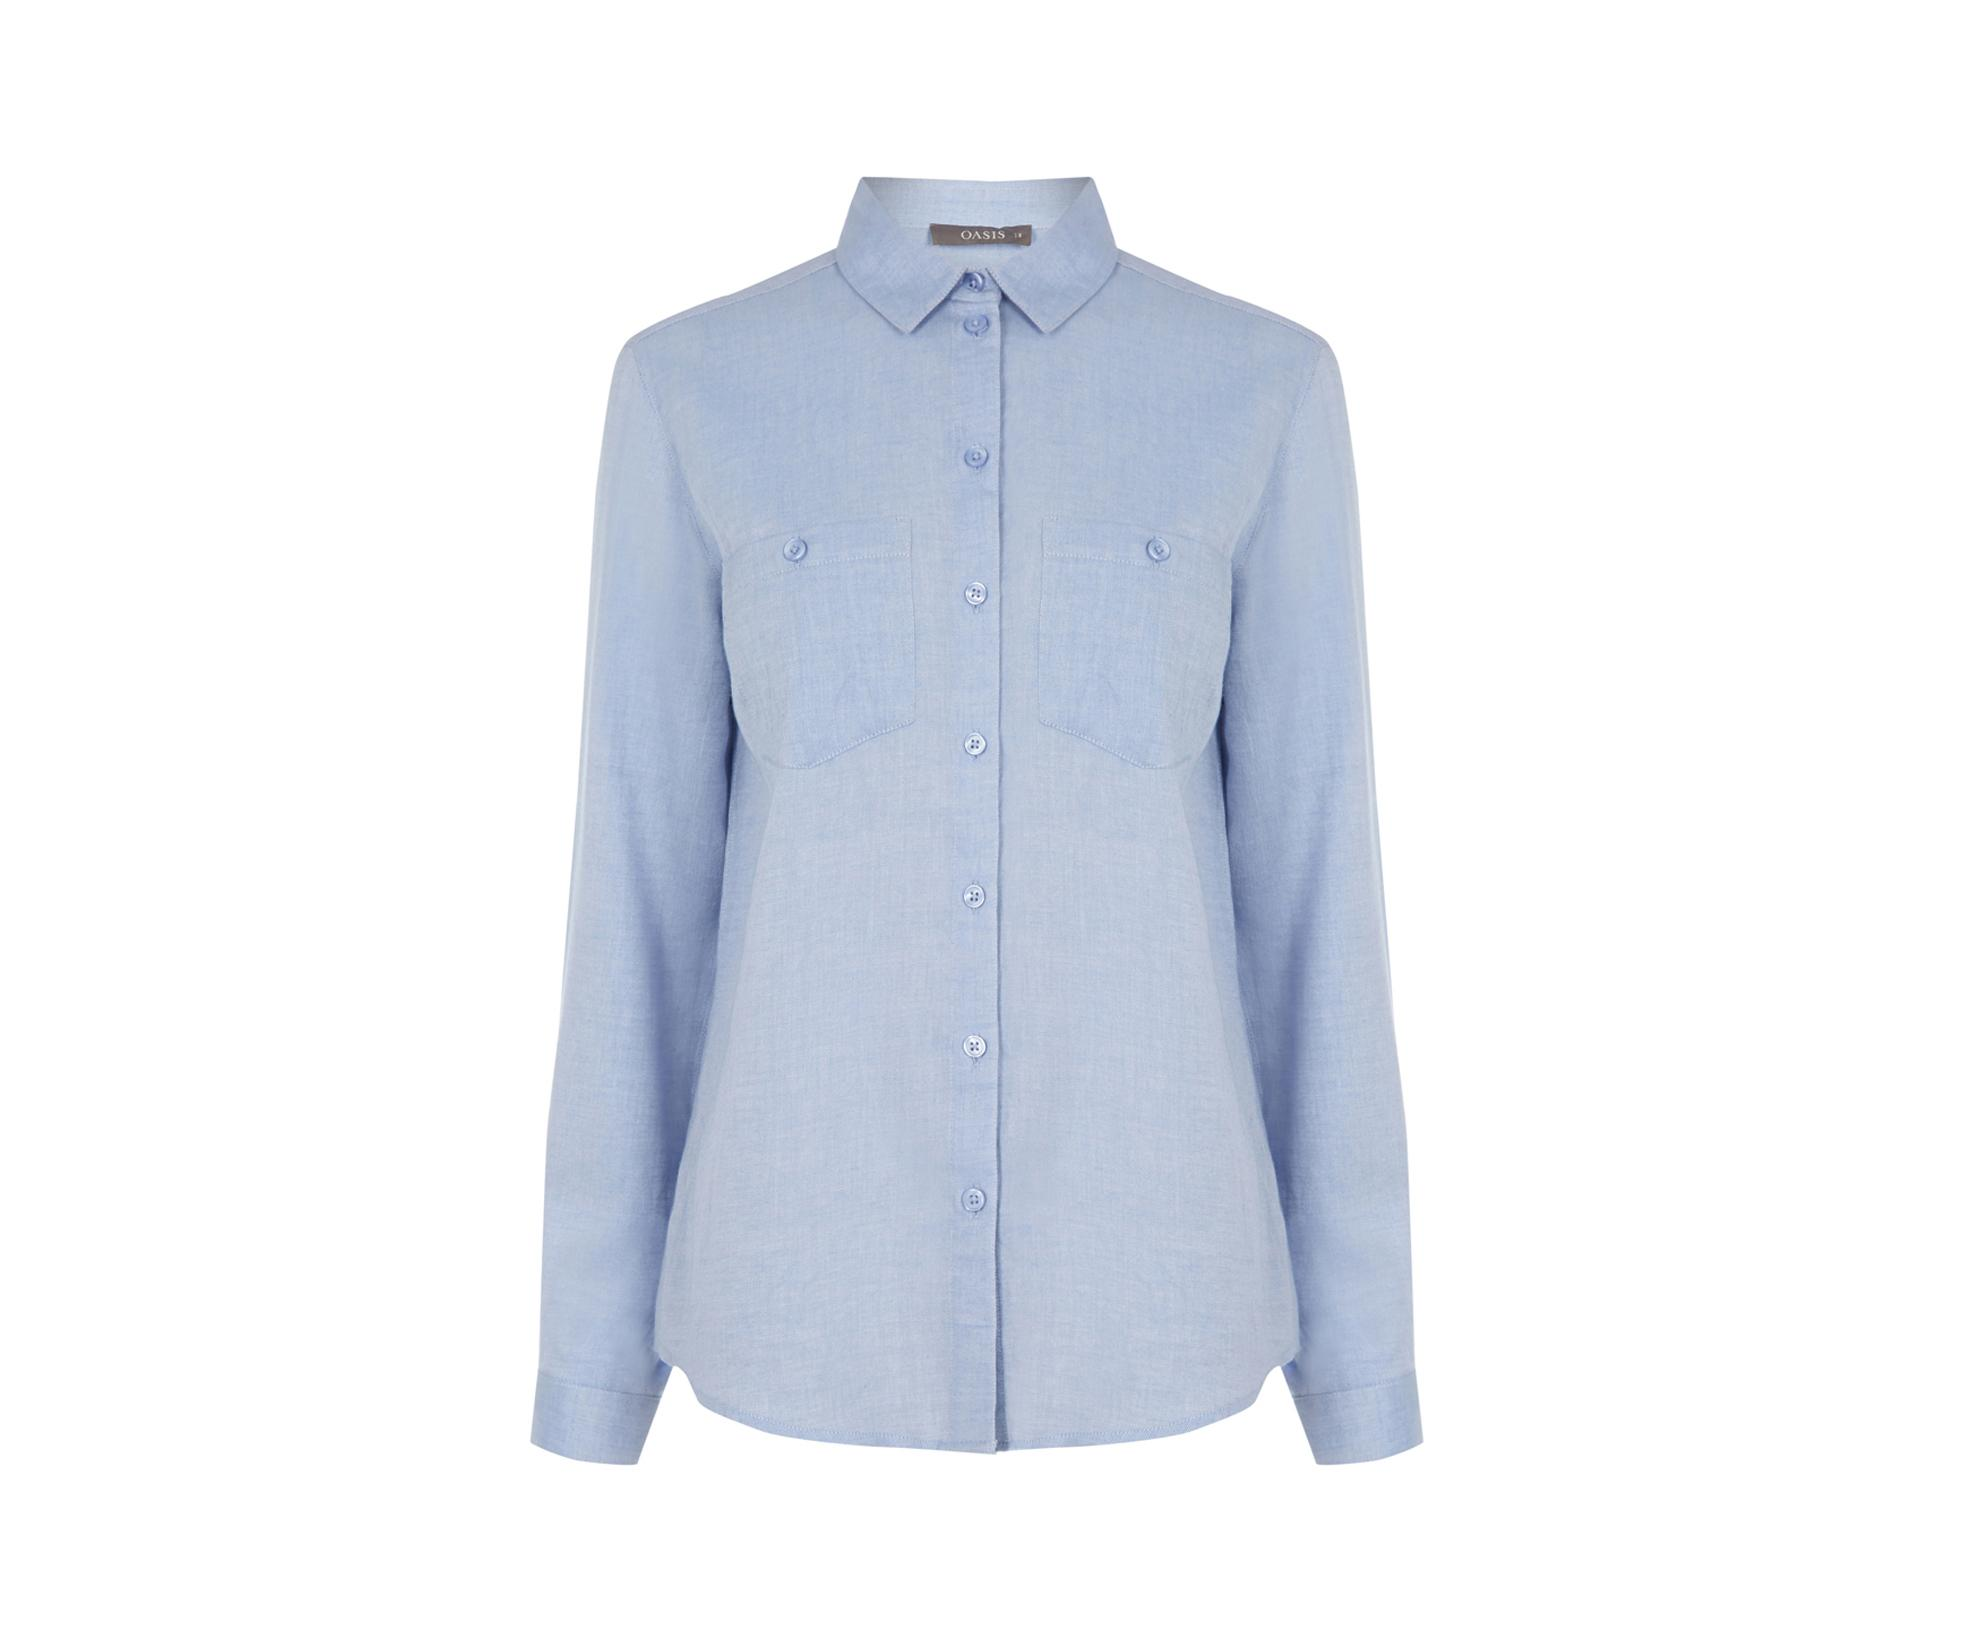 Lyst oasis utility soft cotton shirt in blue for Soft cotton dress shirts